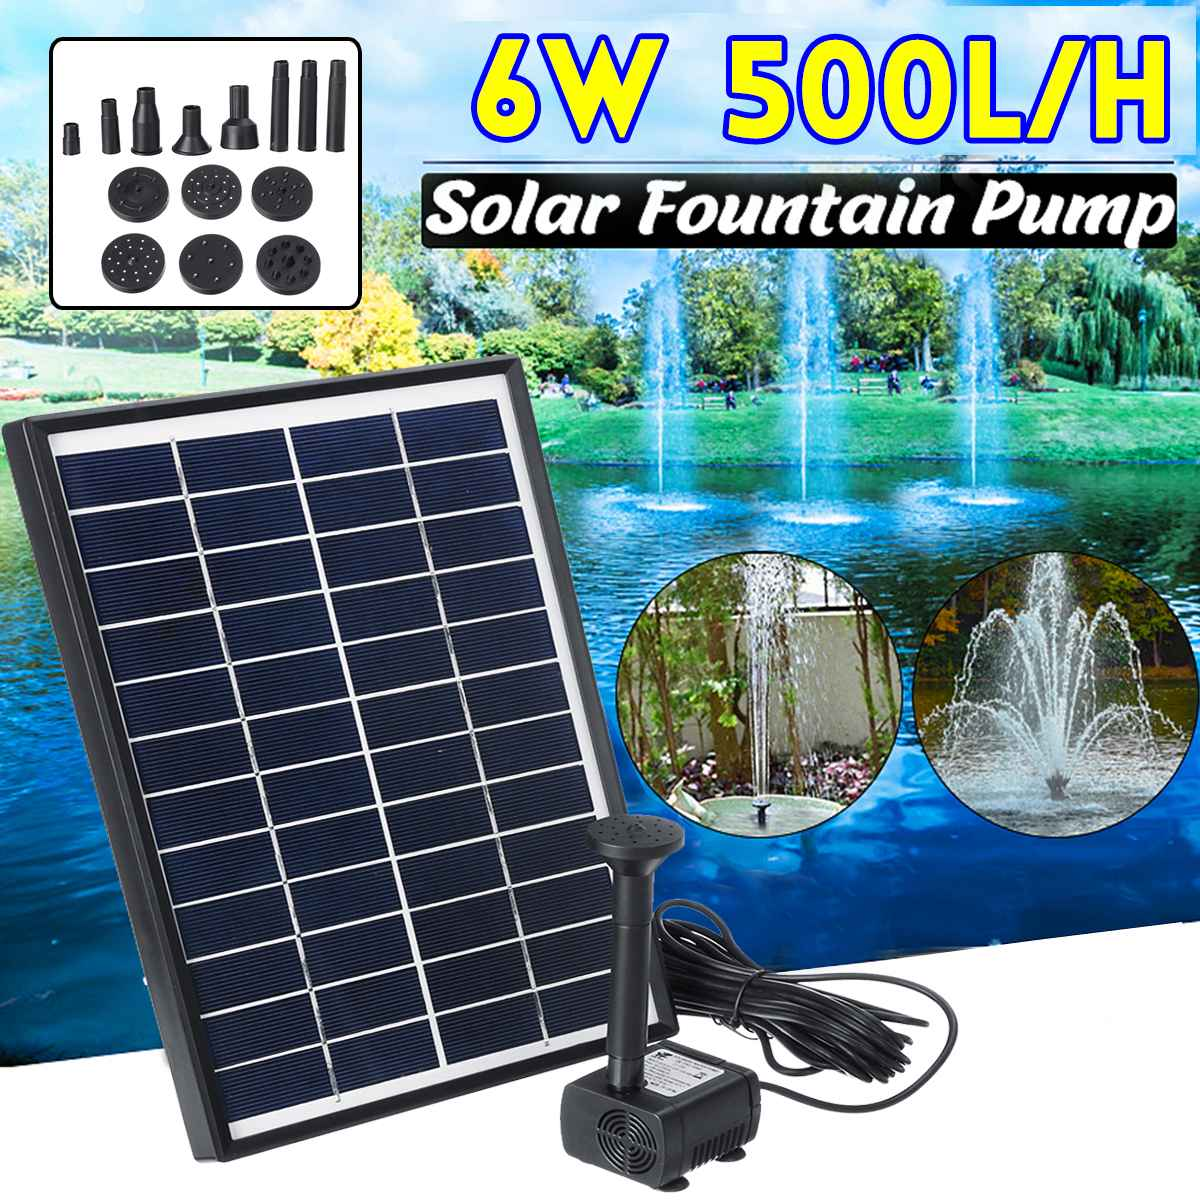 6W 500L/H Solar Power Panel Water Pump Garden Landscape Floating Fountain Artificial Outdoor Fountain Home Decoration Pump Set